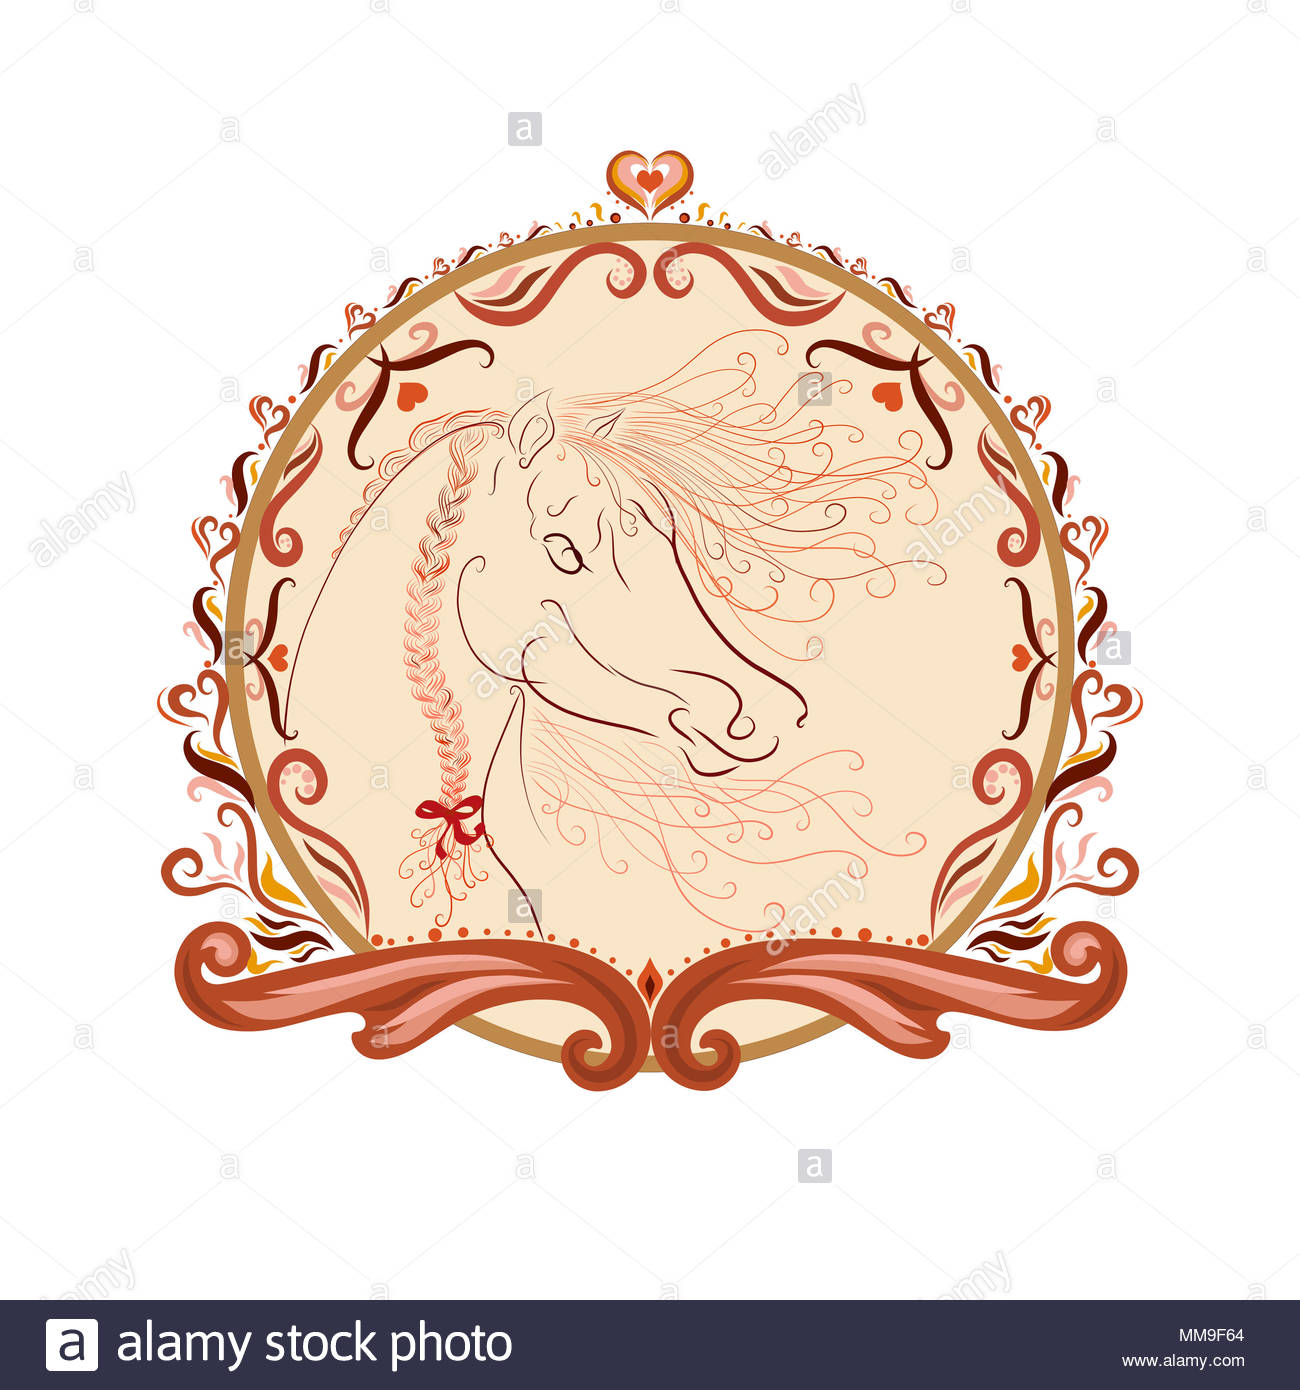 The horse's head with a fluffy mane and bright oblique painted graceful lines with swirls in an elegant round frame Stock Photo